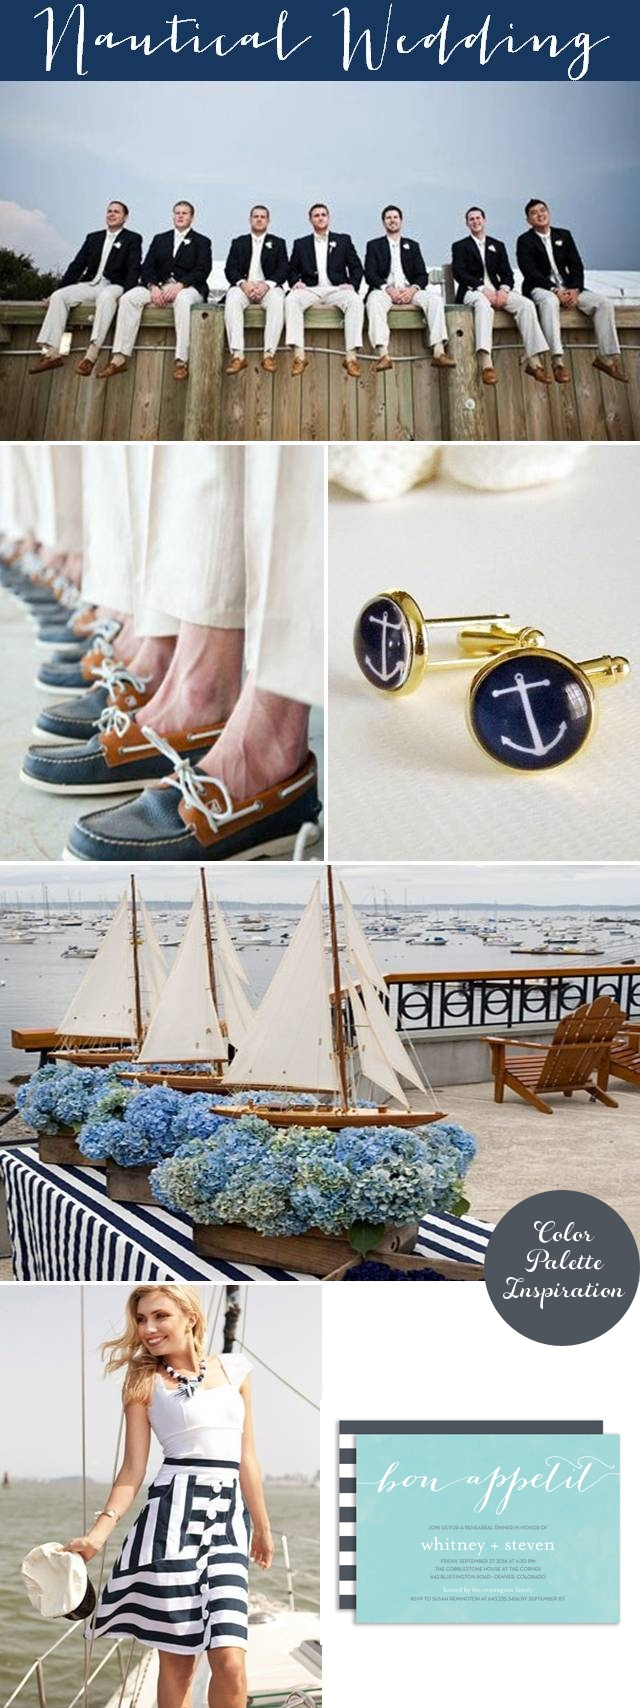 54 best Wedding & Party Ideas! images on Pinterest | Anniversary ...